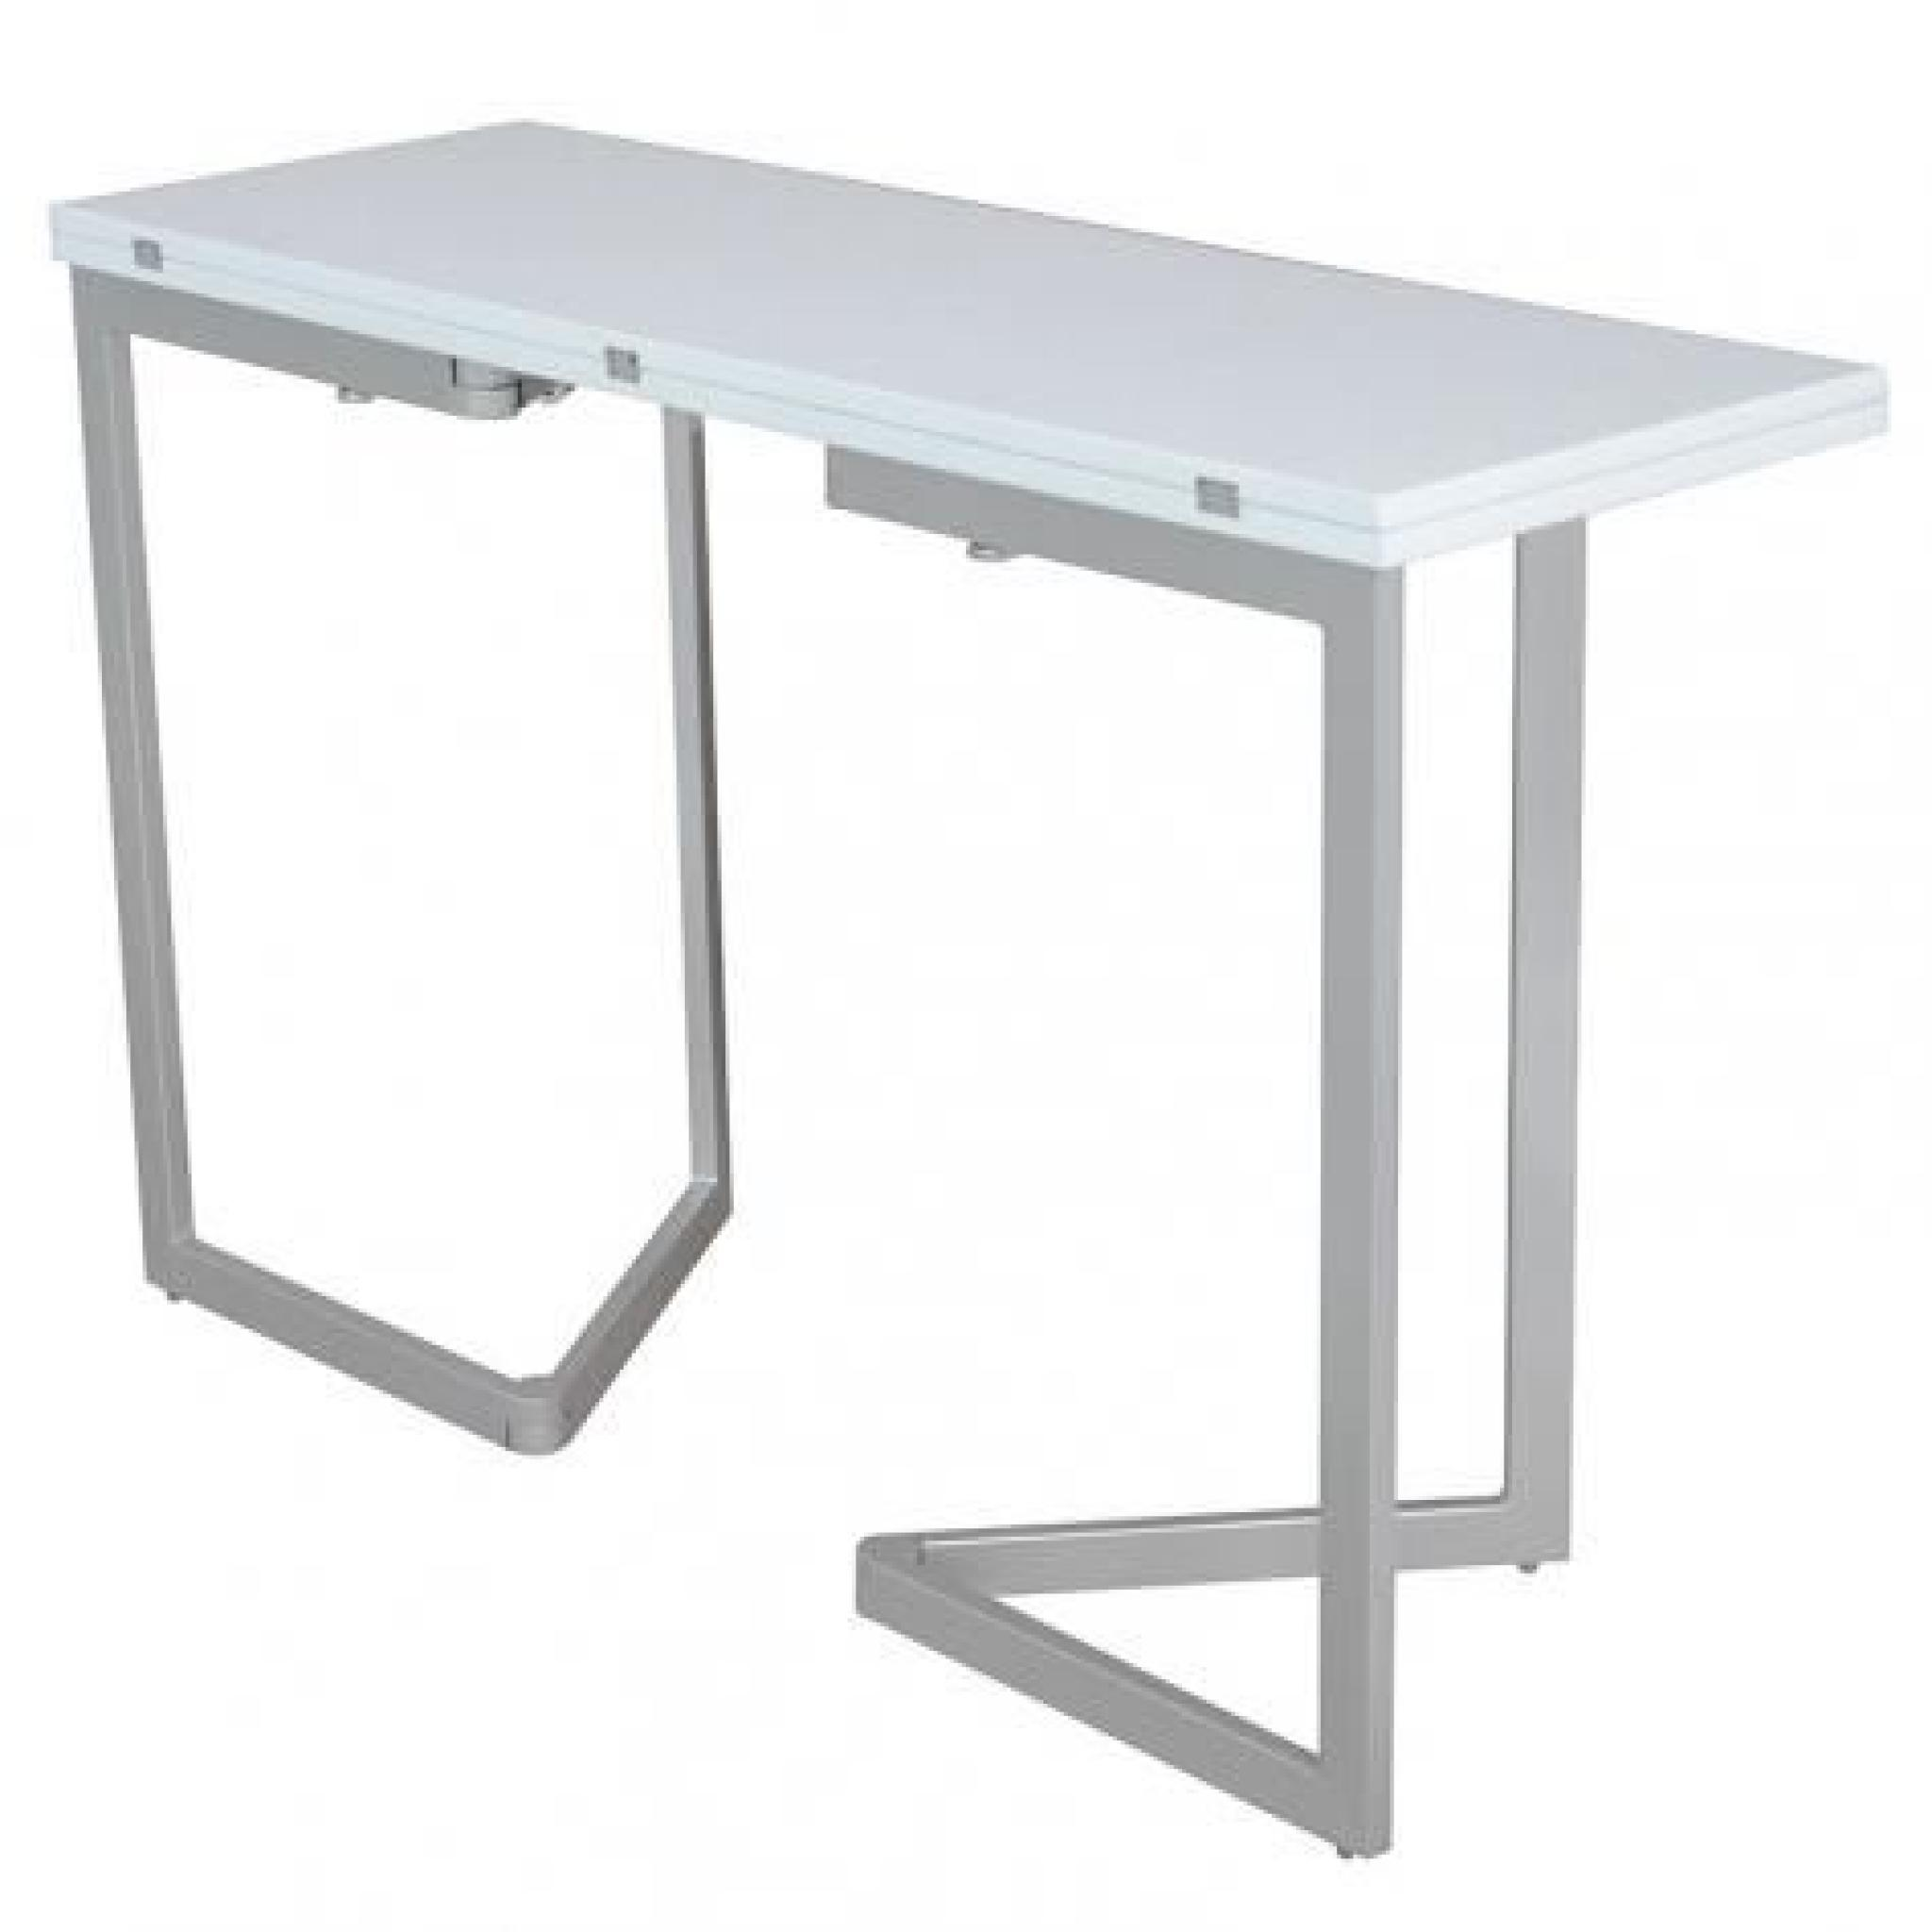 Console extensible solde maison design for Table extensible en solde